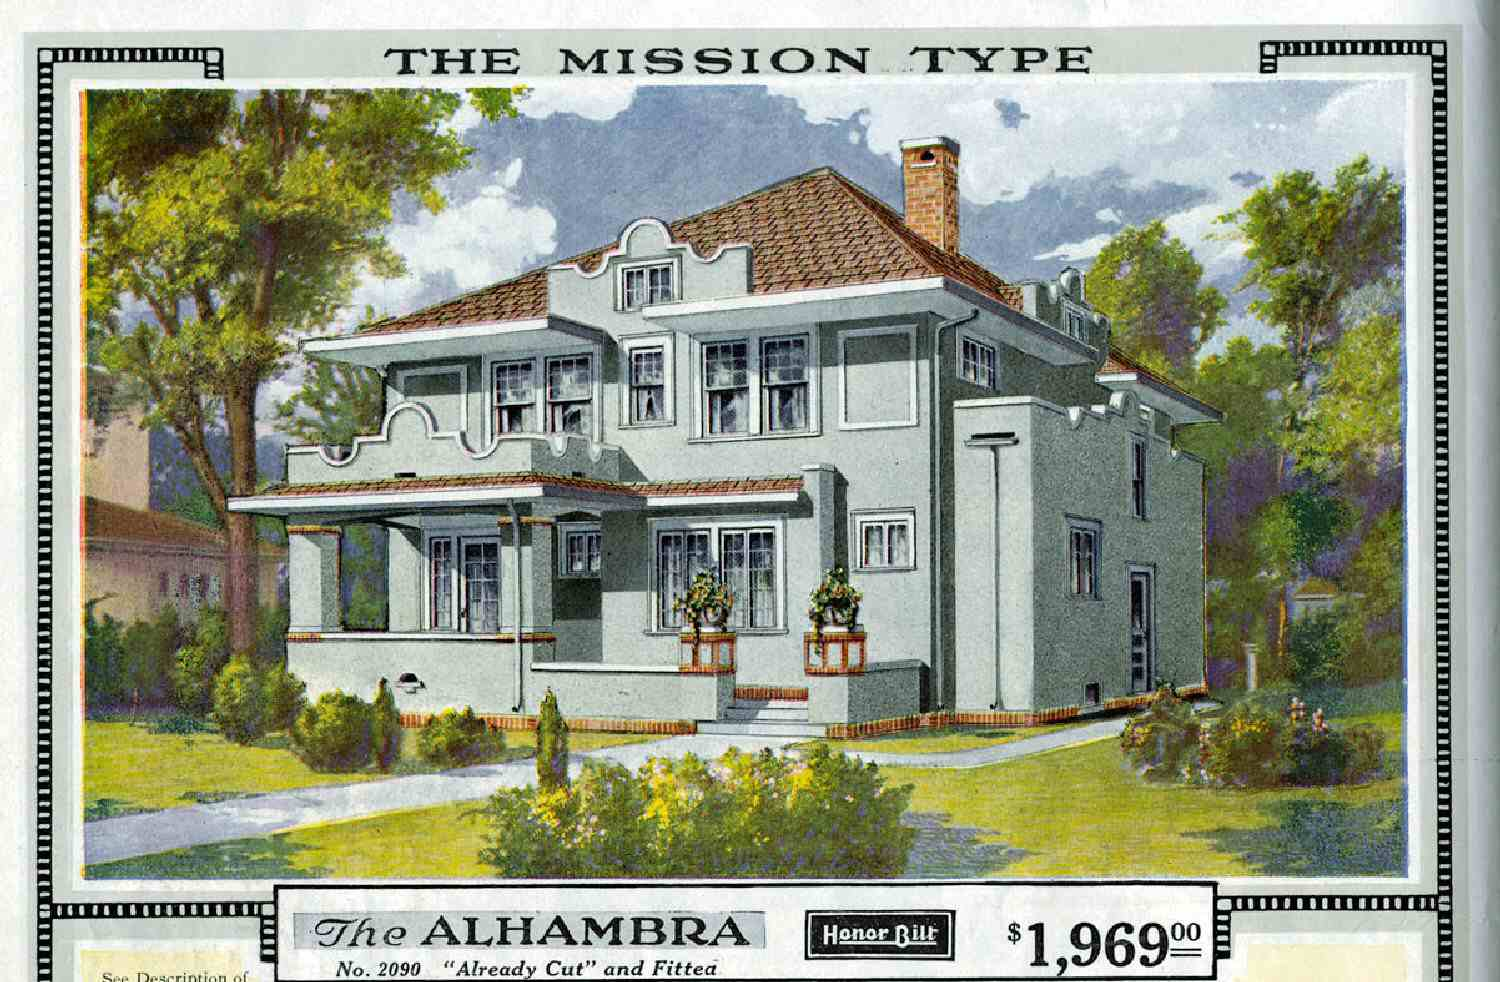 Colored illustration of The Alhambra Honor Bilt Already Cut and Fitted catalog house, foursquare Mission Type stucco house with front porch, front parapet, and pyramid roof for $1969